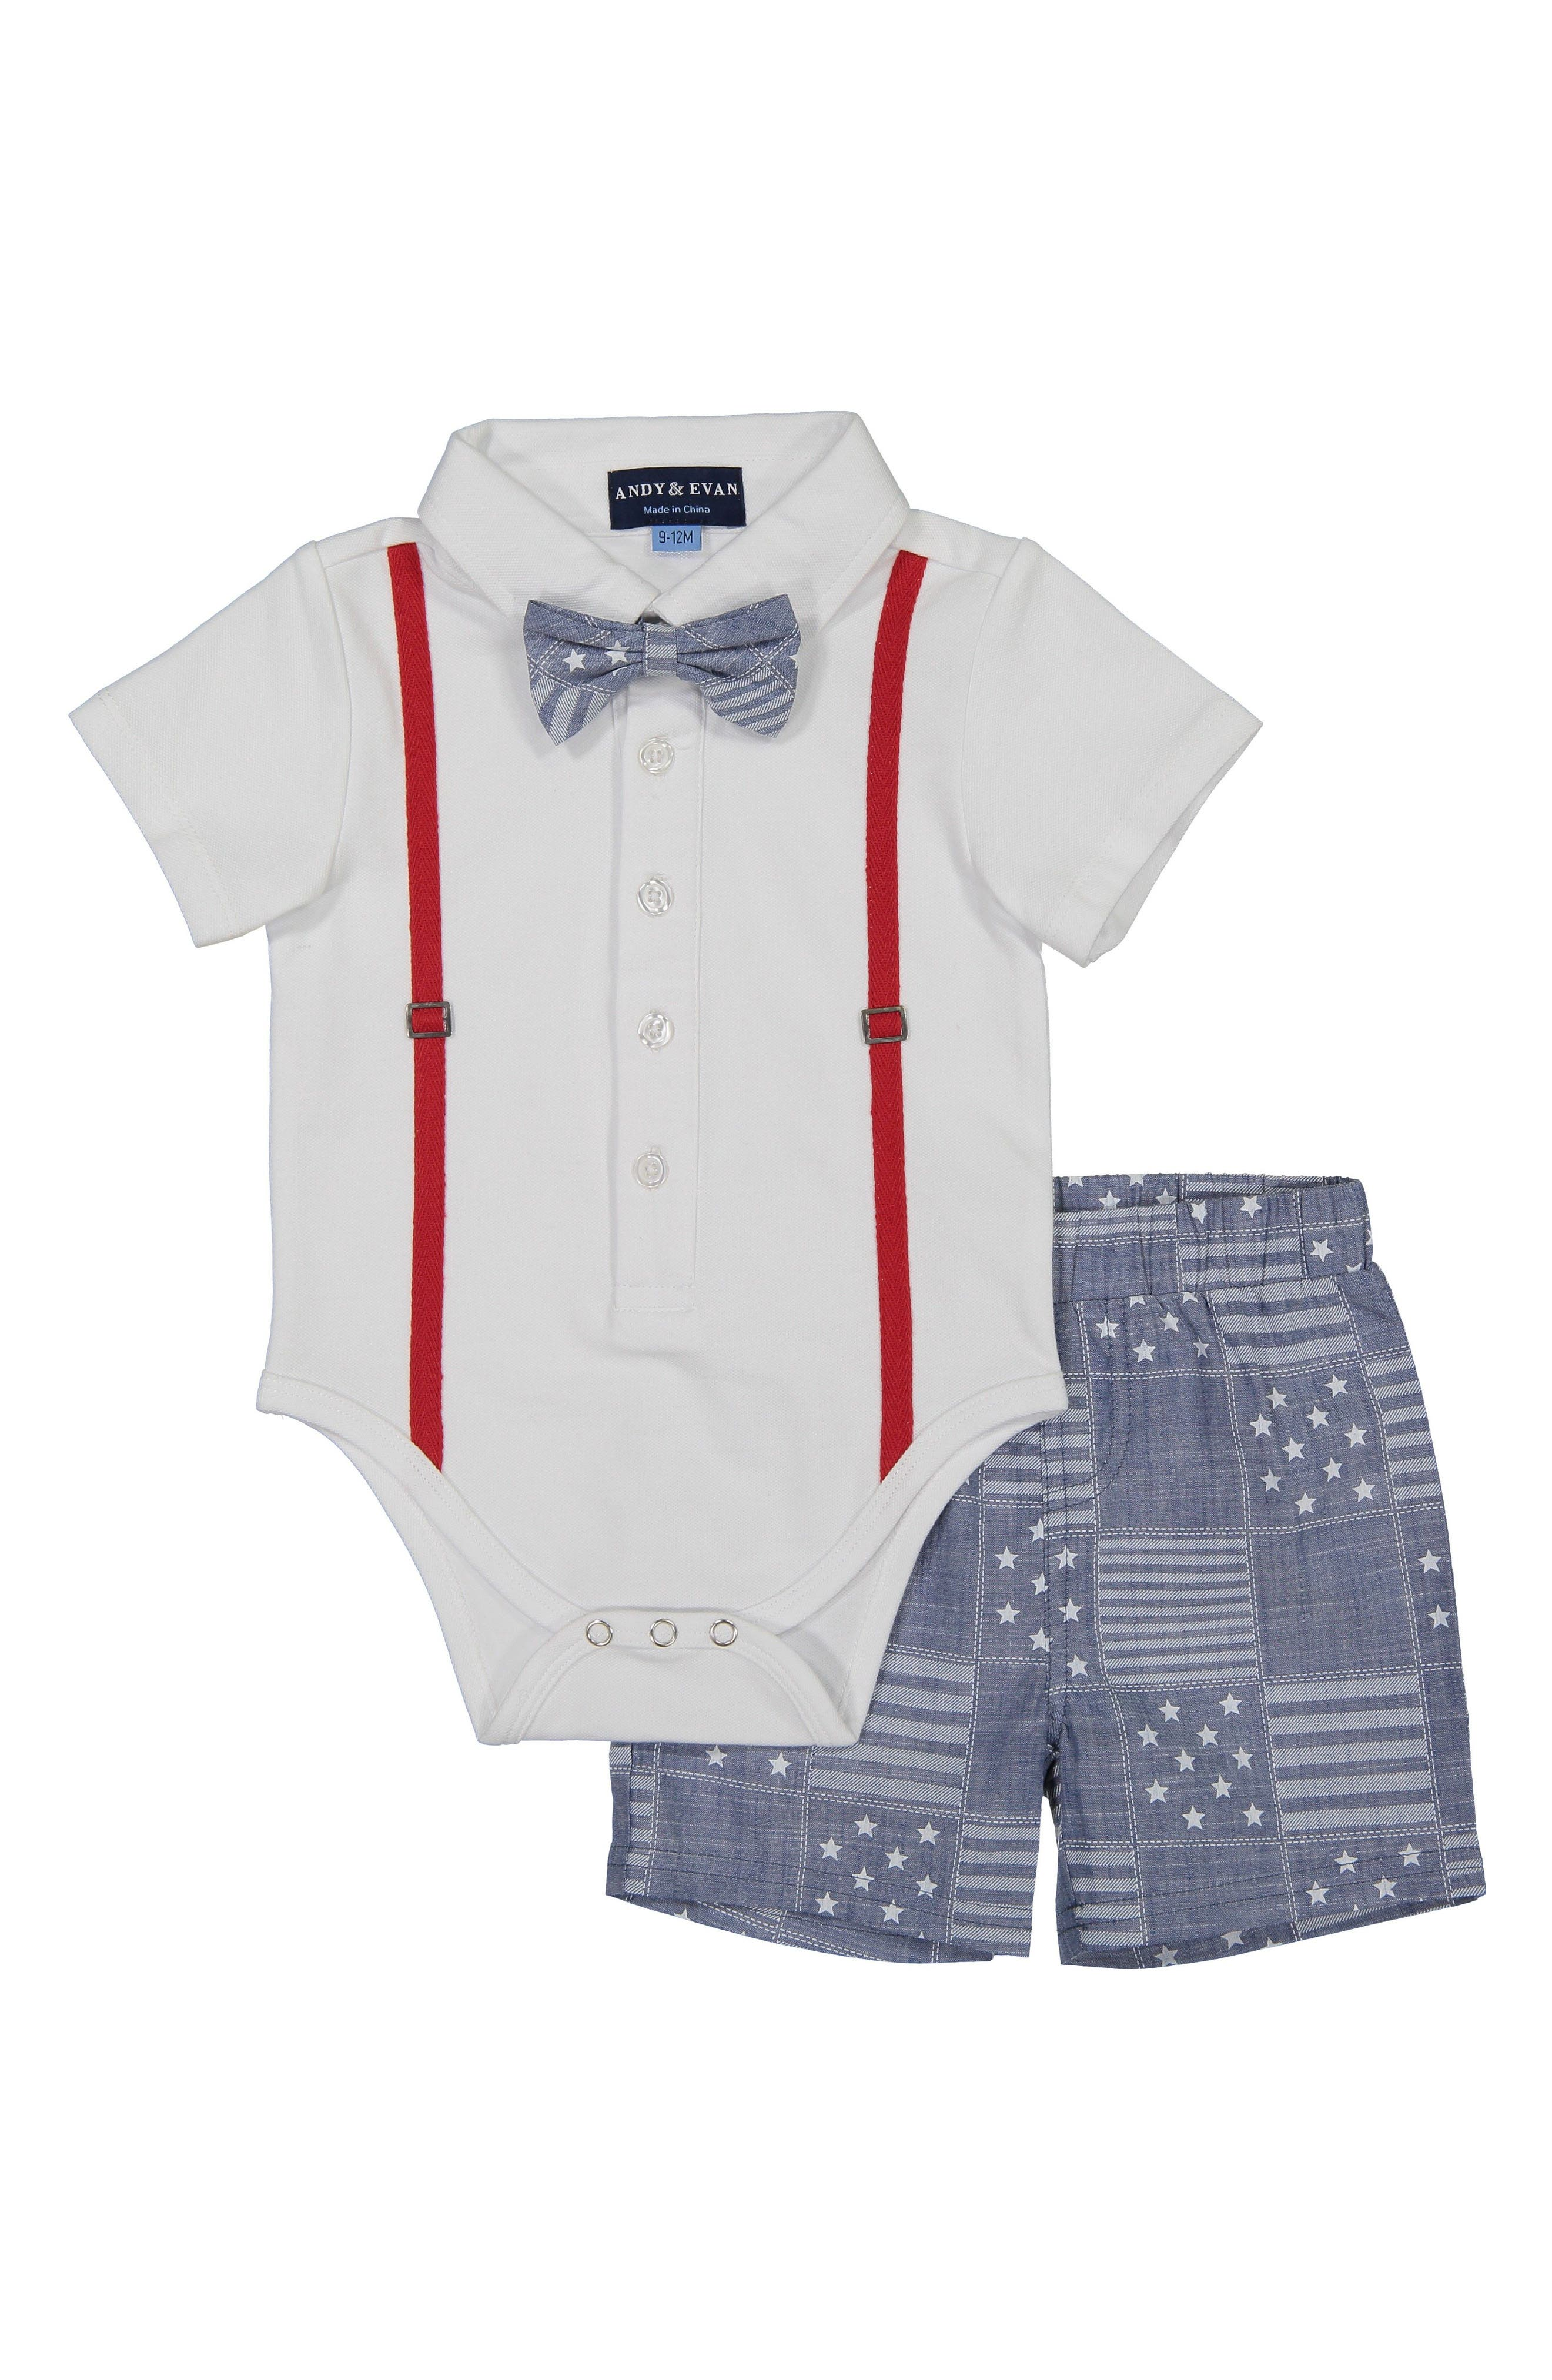 Main Image - Andy & Evan All-American Polo, Bow Tie & Shorts Set (Baby Boys)